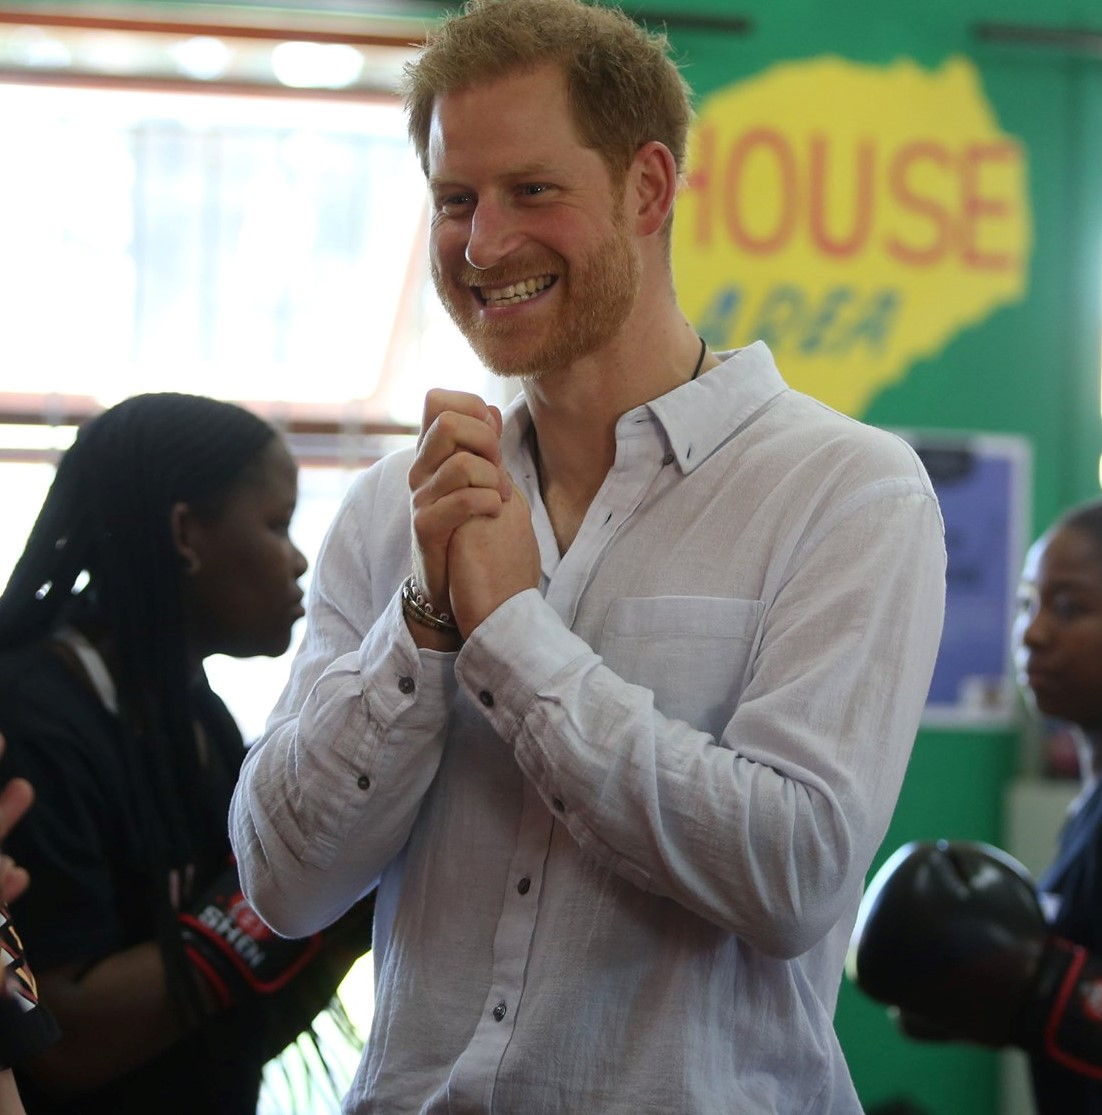 Prince Harry To Guest Edit National Geographic's Instagram Account For #LookingUp Campaign